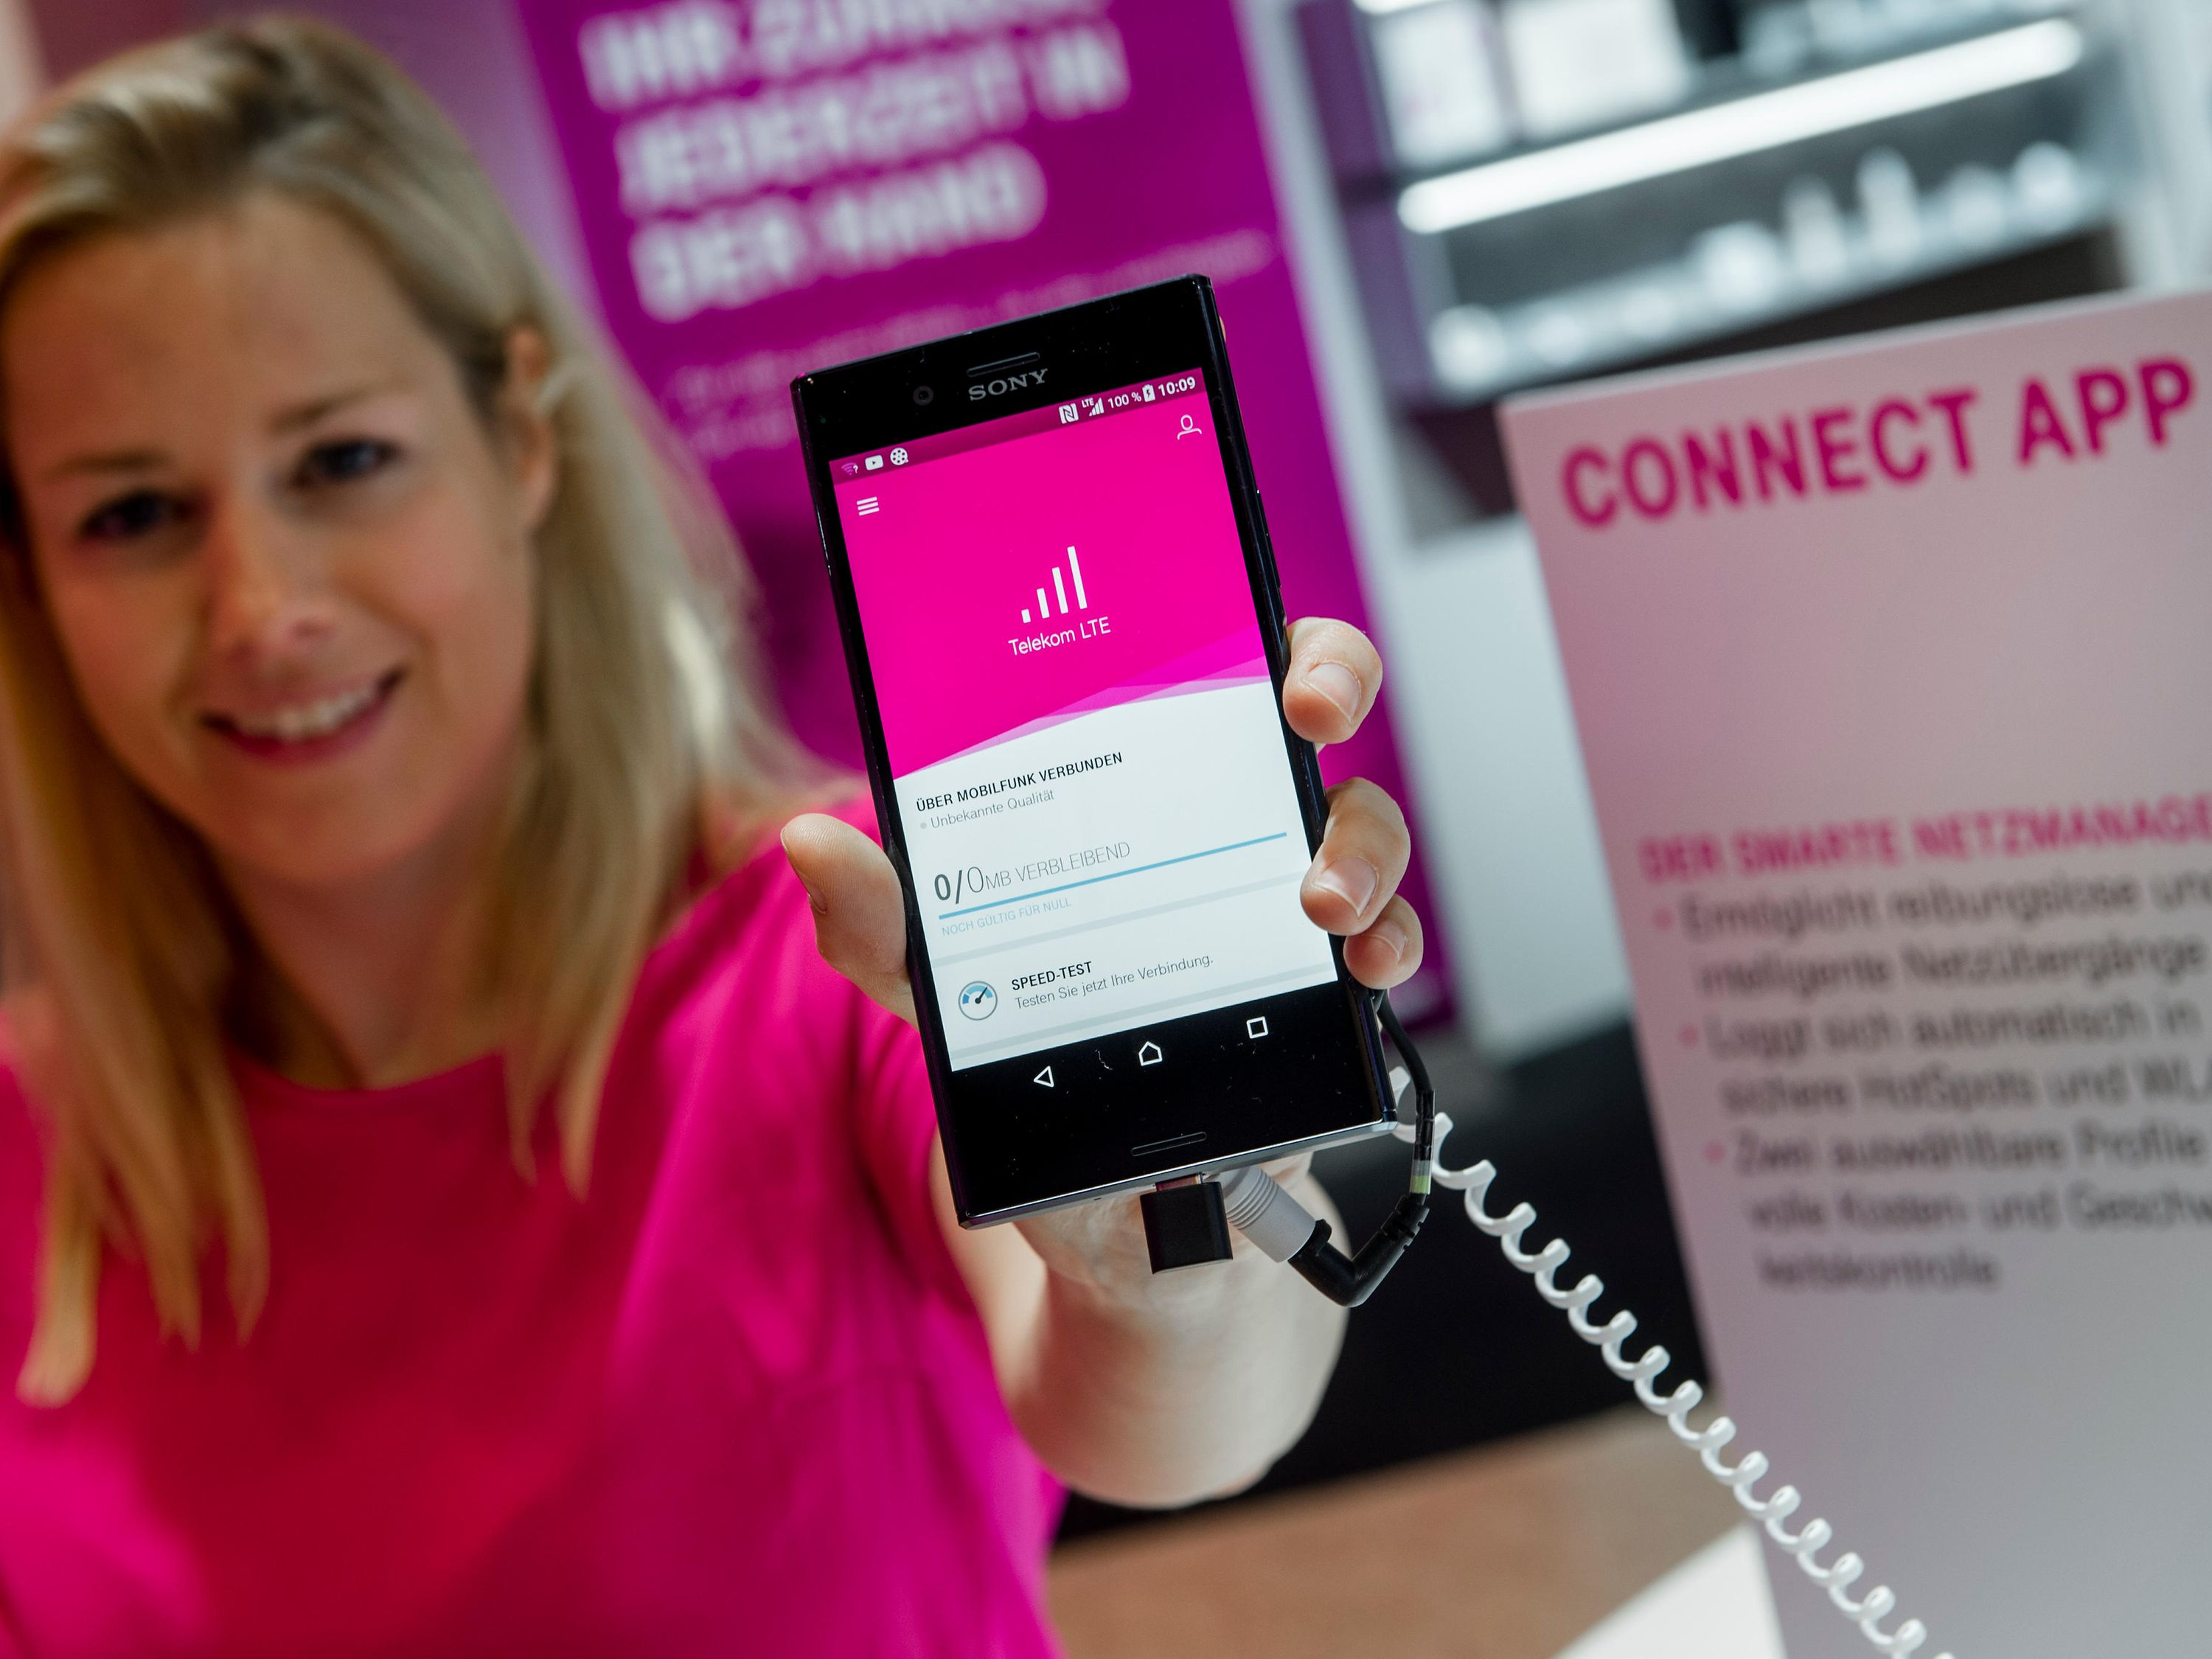 Surfing fast and secure with CONNECT App | Deutsche Telekom